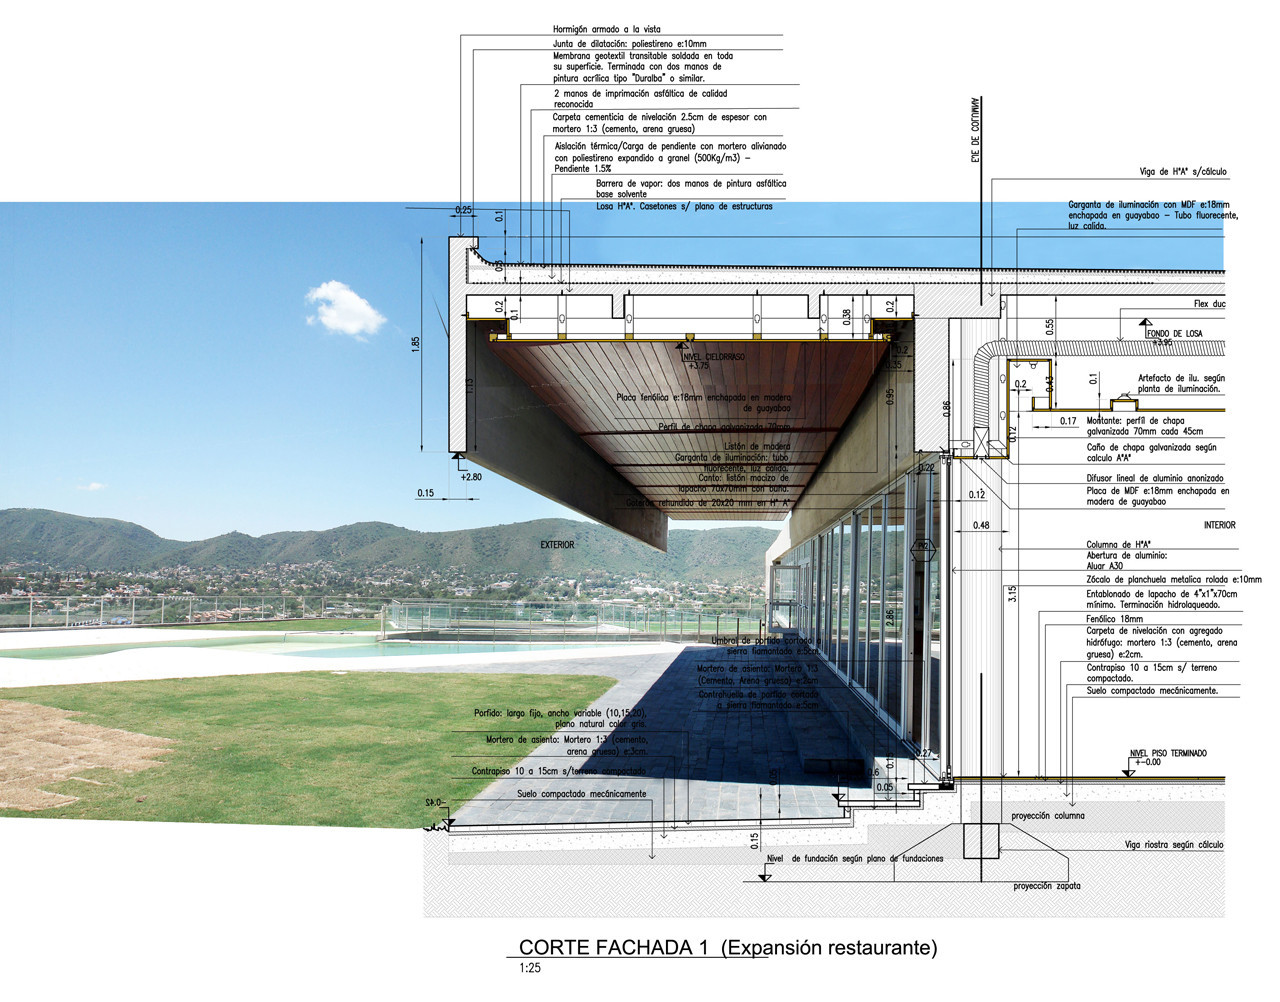 10 Exemplary Ways to Represent Architectonic Construction Details